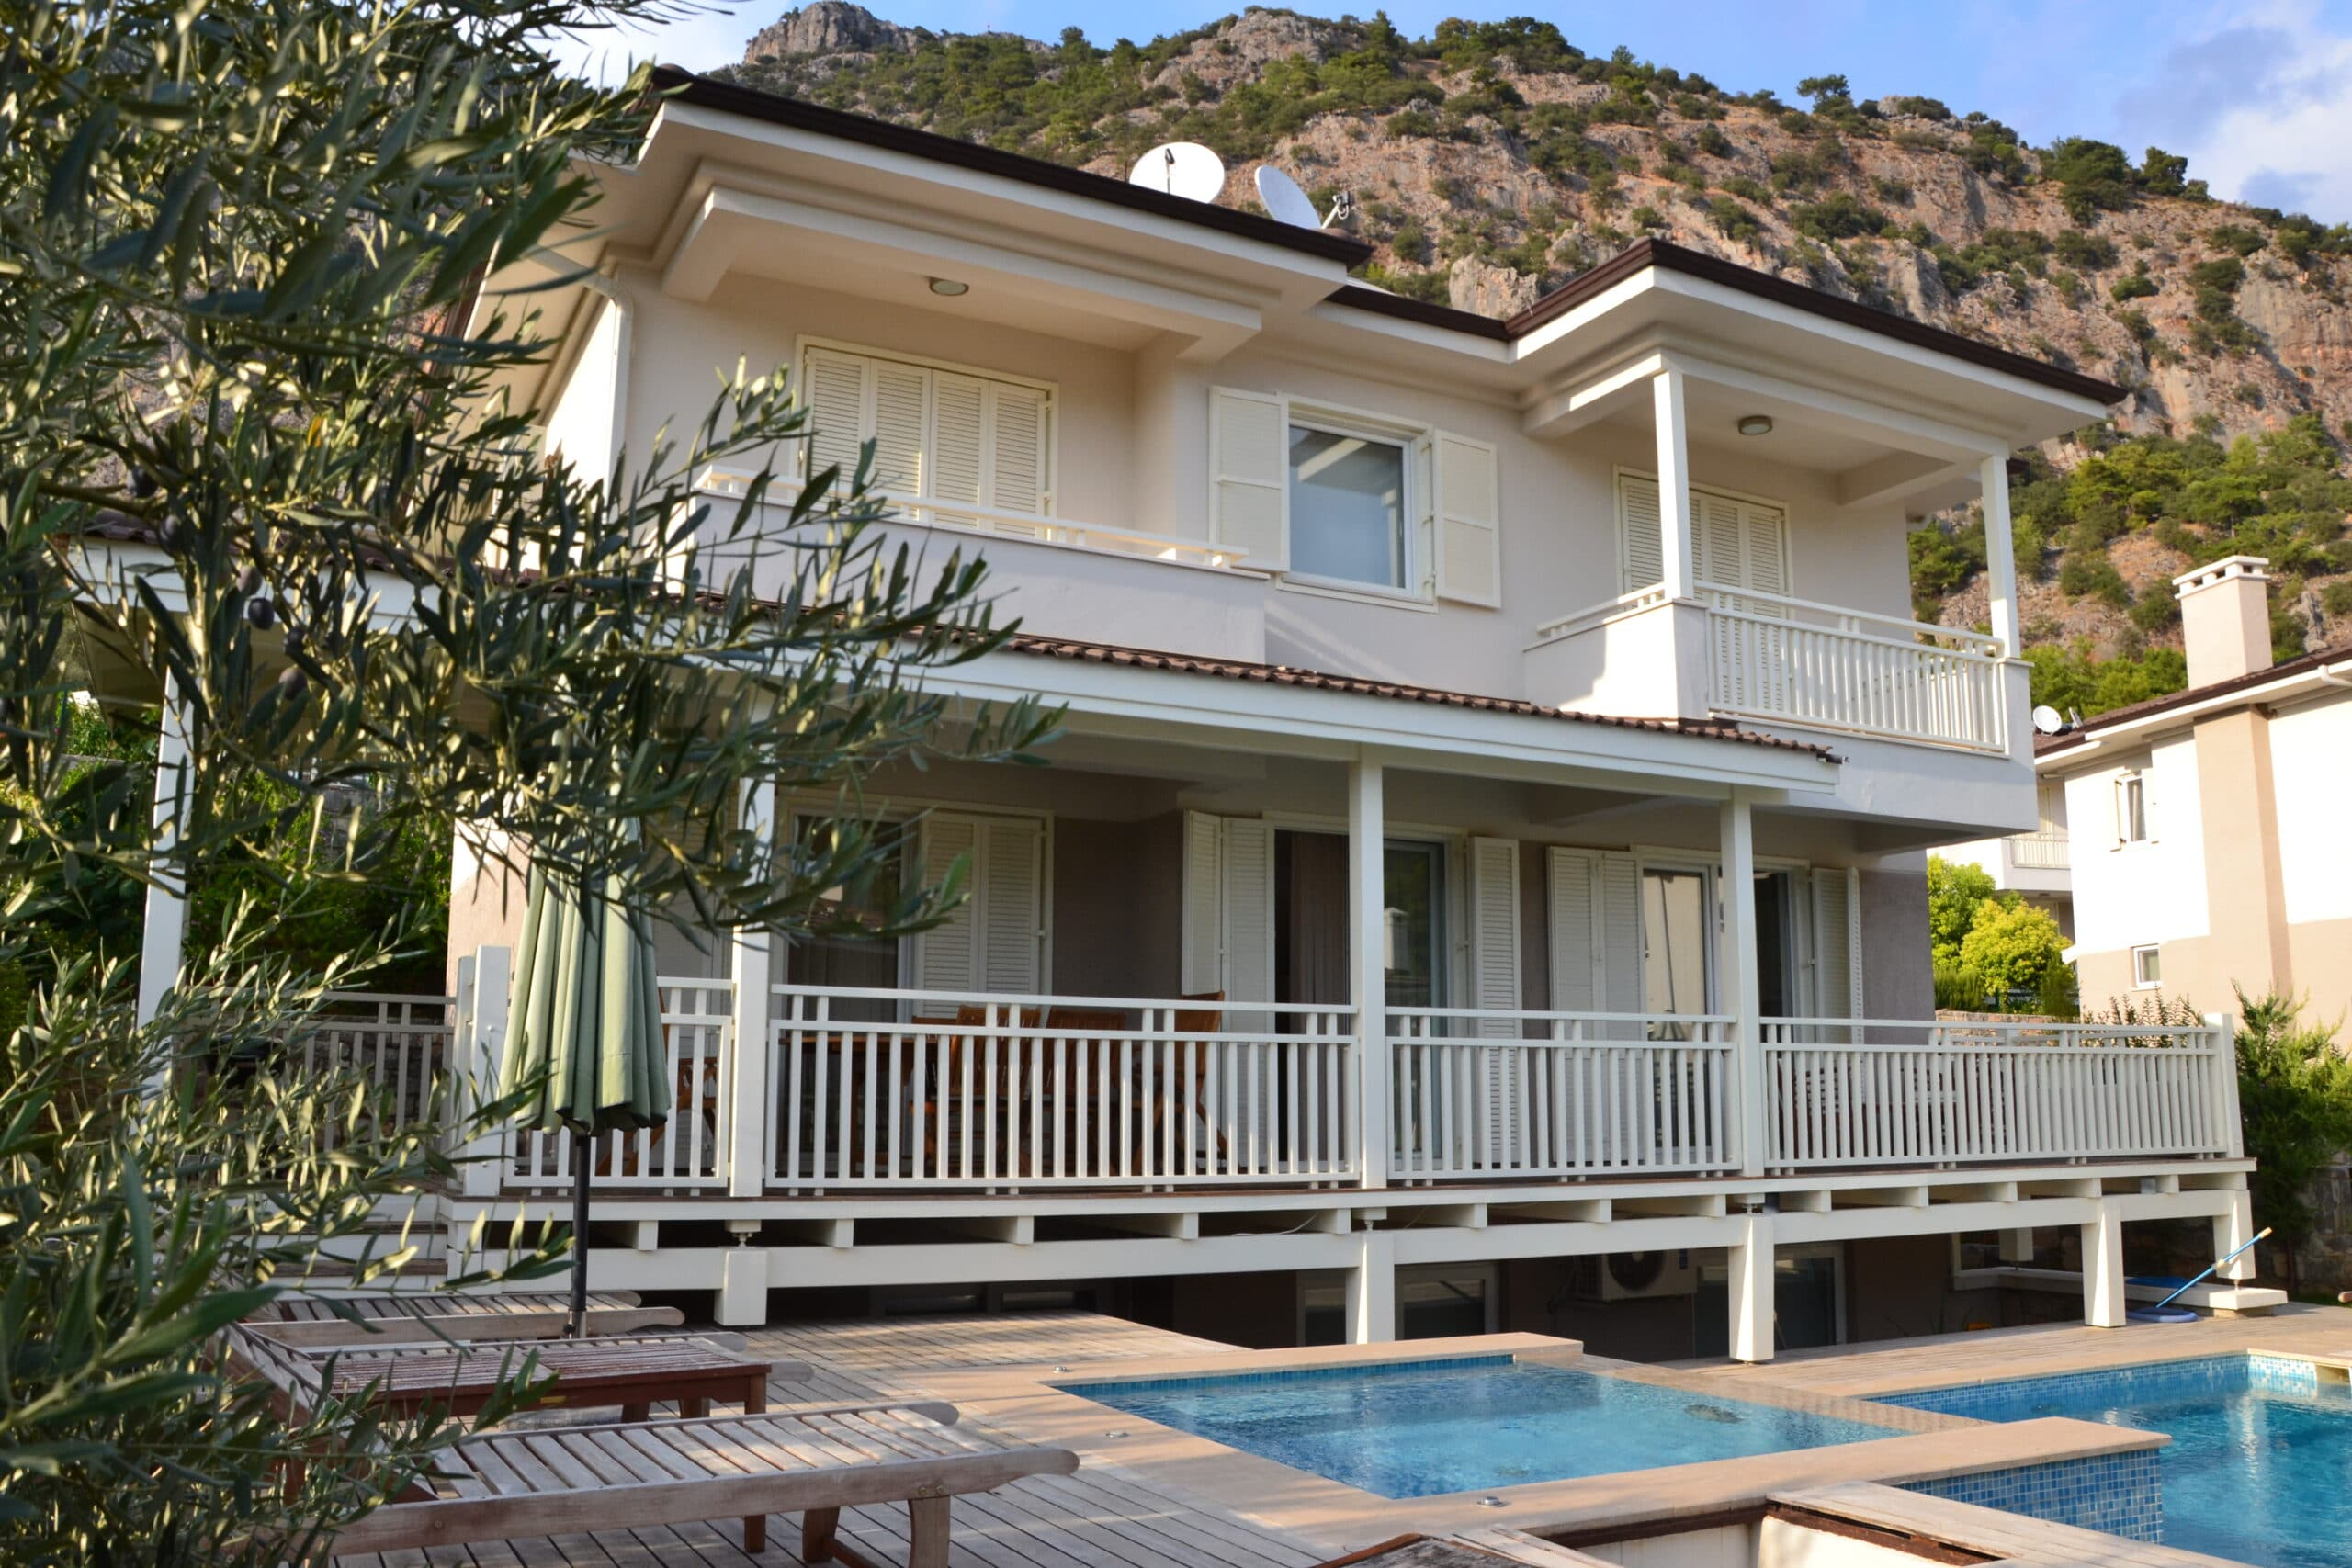 Holiday Villa with Private Pool & Jacuzzi for Rent in Gocek